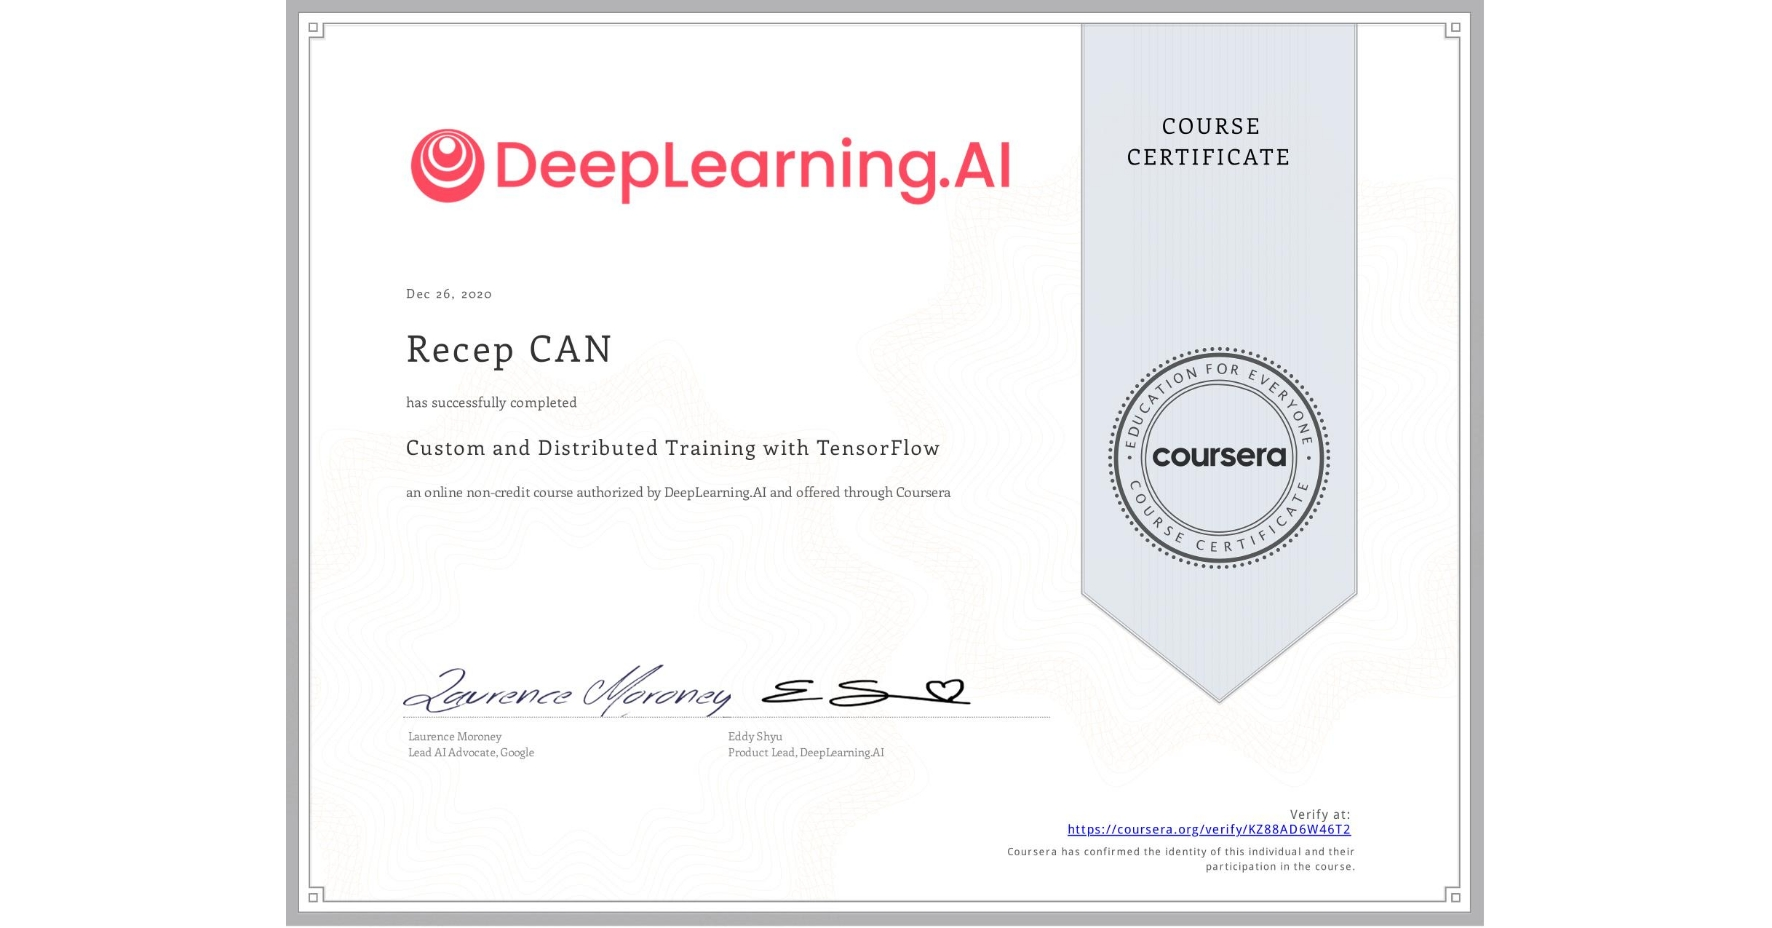 View certificate for Recep CAN, Custom and Distributed Training with TensorFlow, an online non-credit course authorized by DeepLearning.AI and offered through Coursera